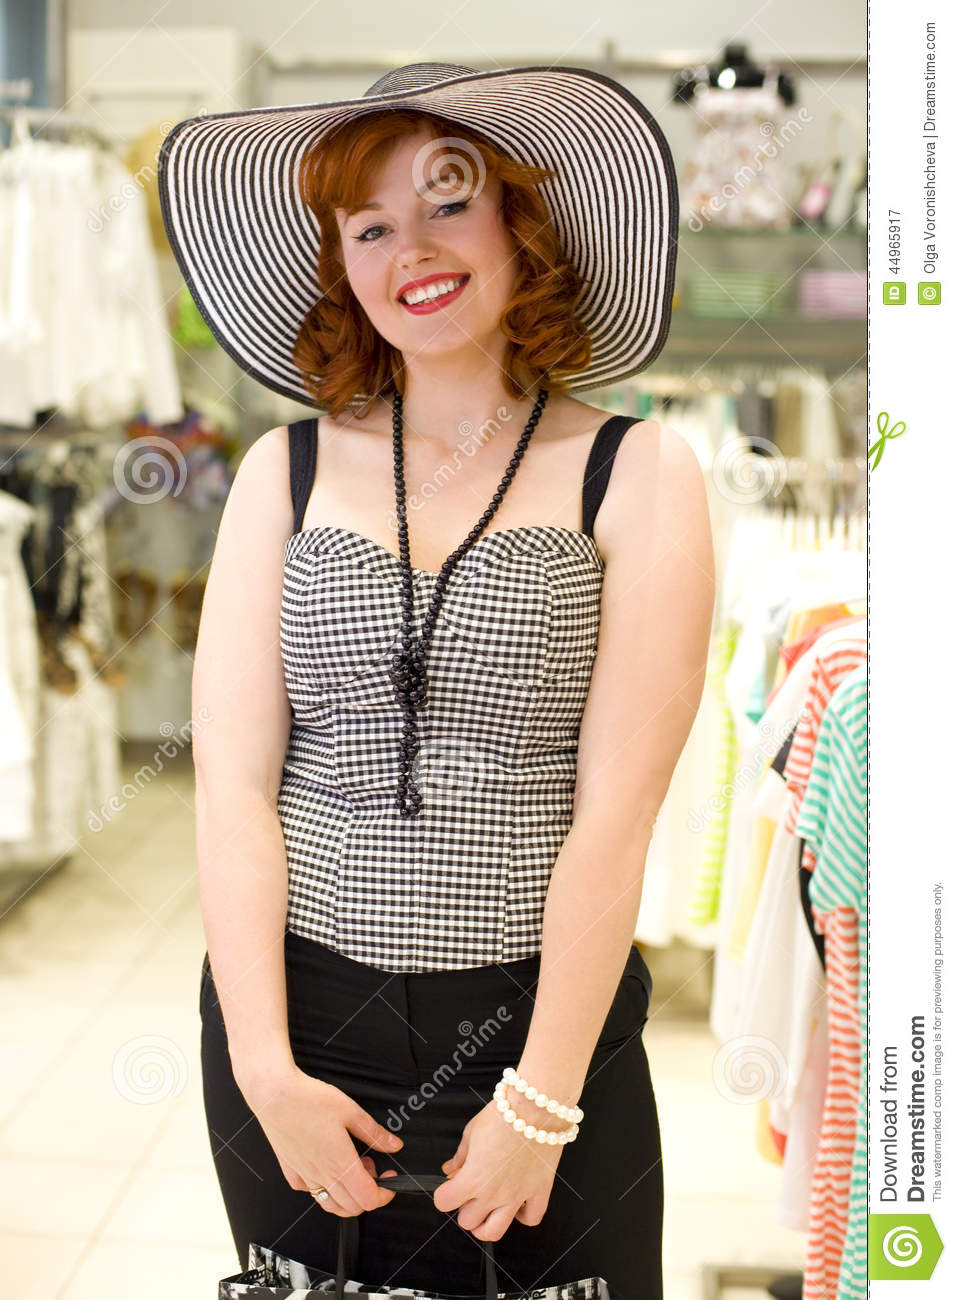 Pinup girl clothing store locator